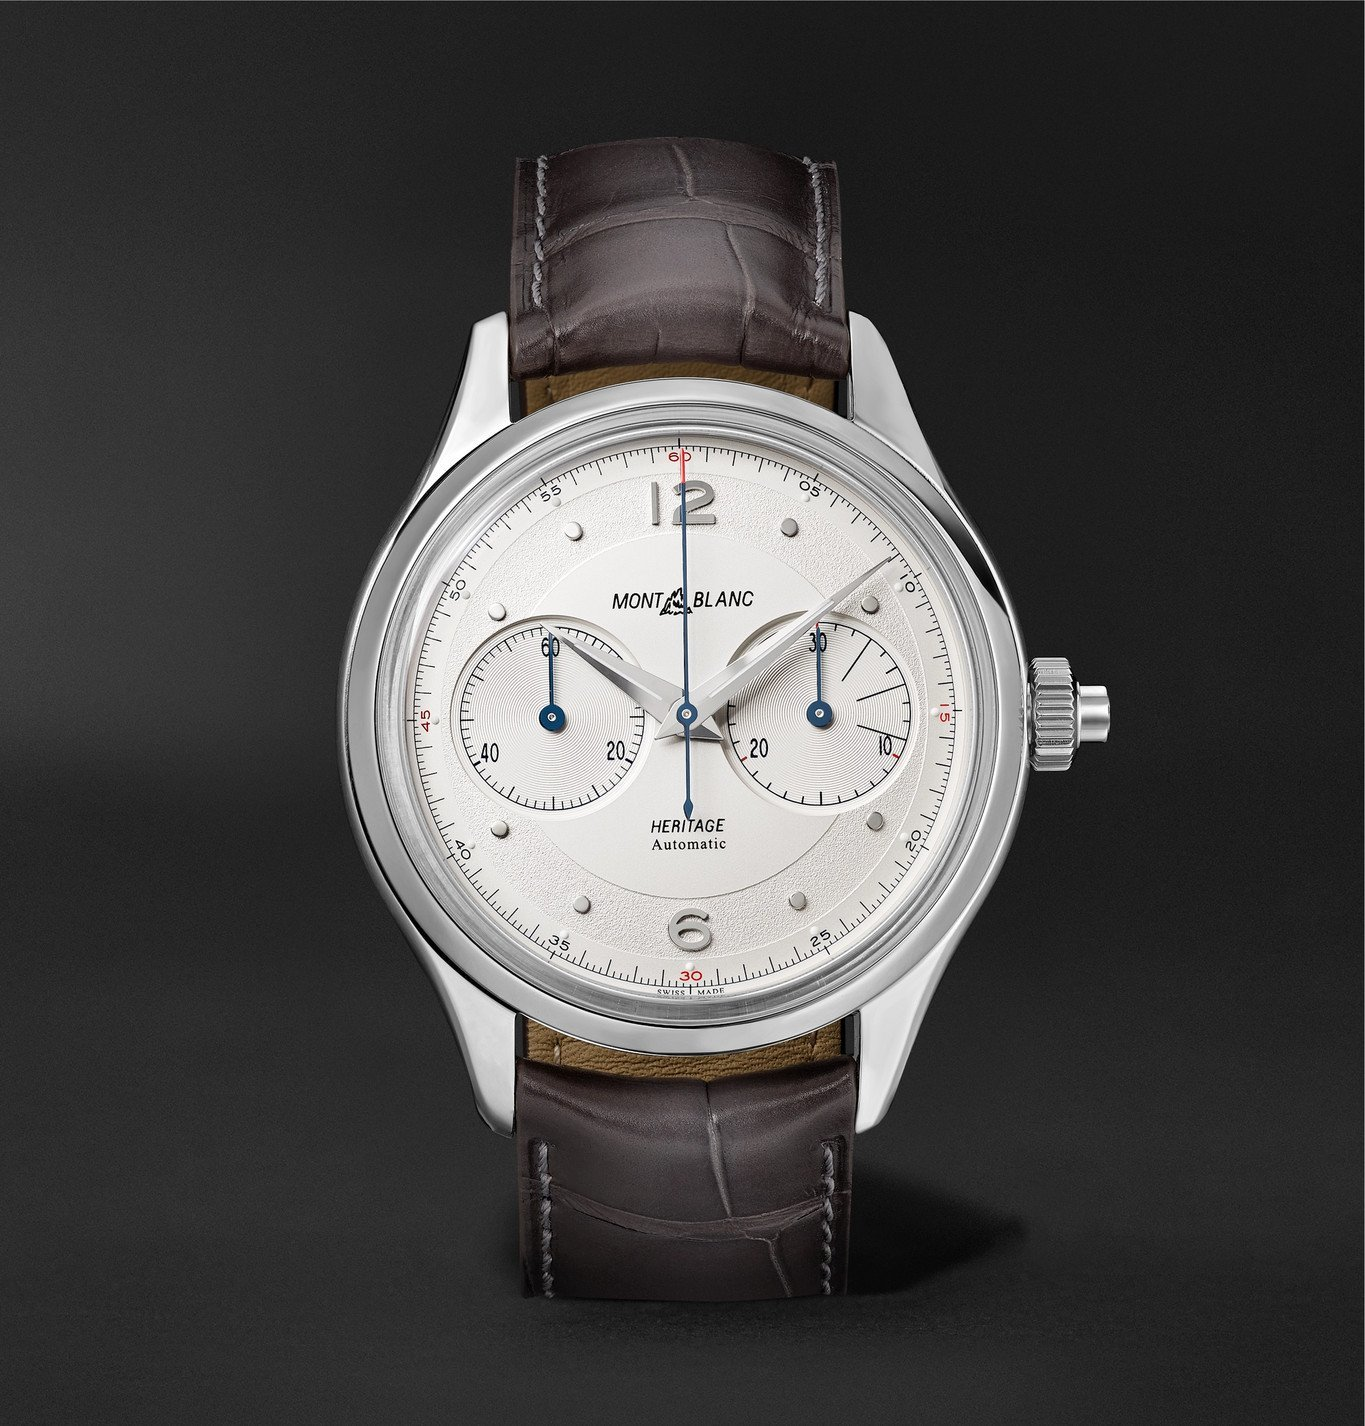 Photo: MONTBLANC - Heritage Monopusher Automatic Chronograph 42mm Stainless Steel and Alligator Watch, Ref. No. 119951 - White